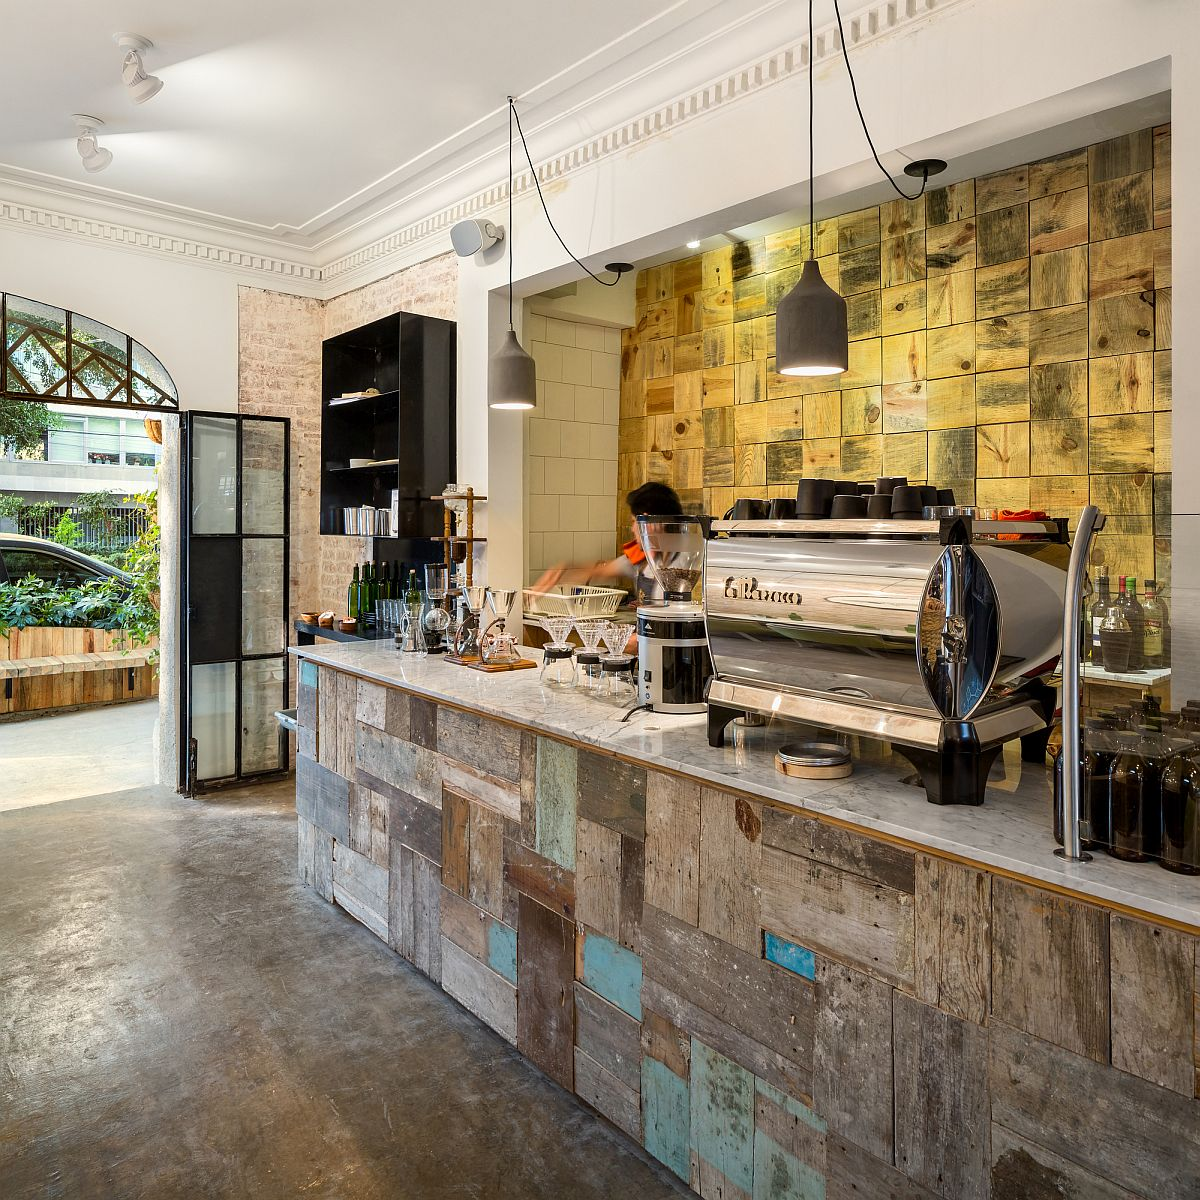 Concrete floors and reclaimed surfaces preserve the original charm of the restaurant